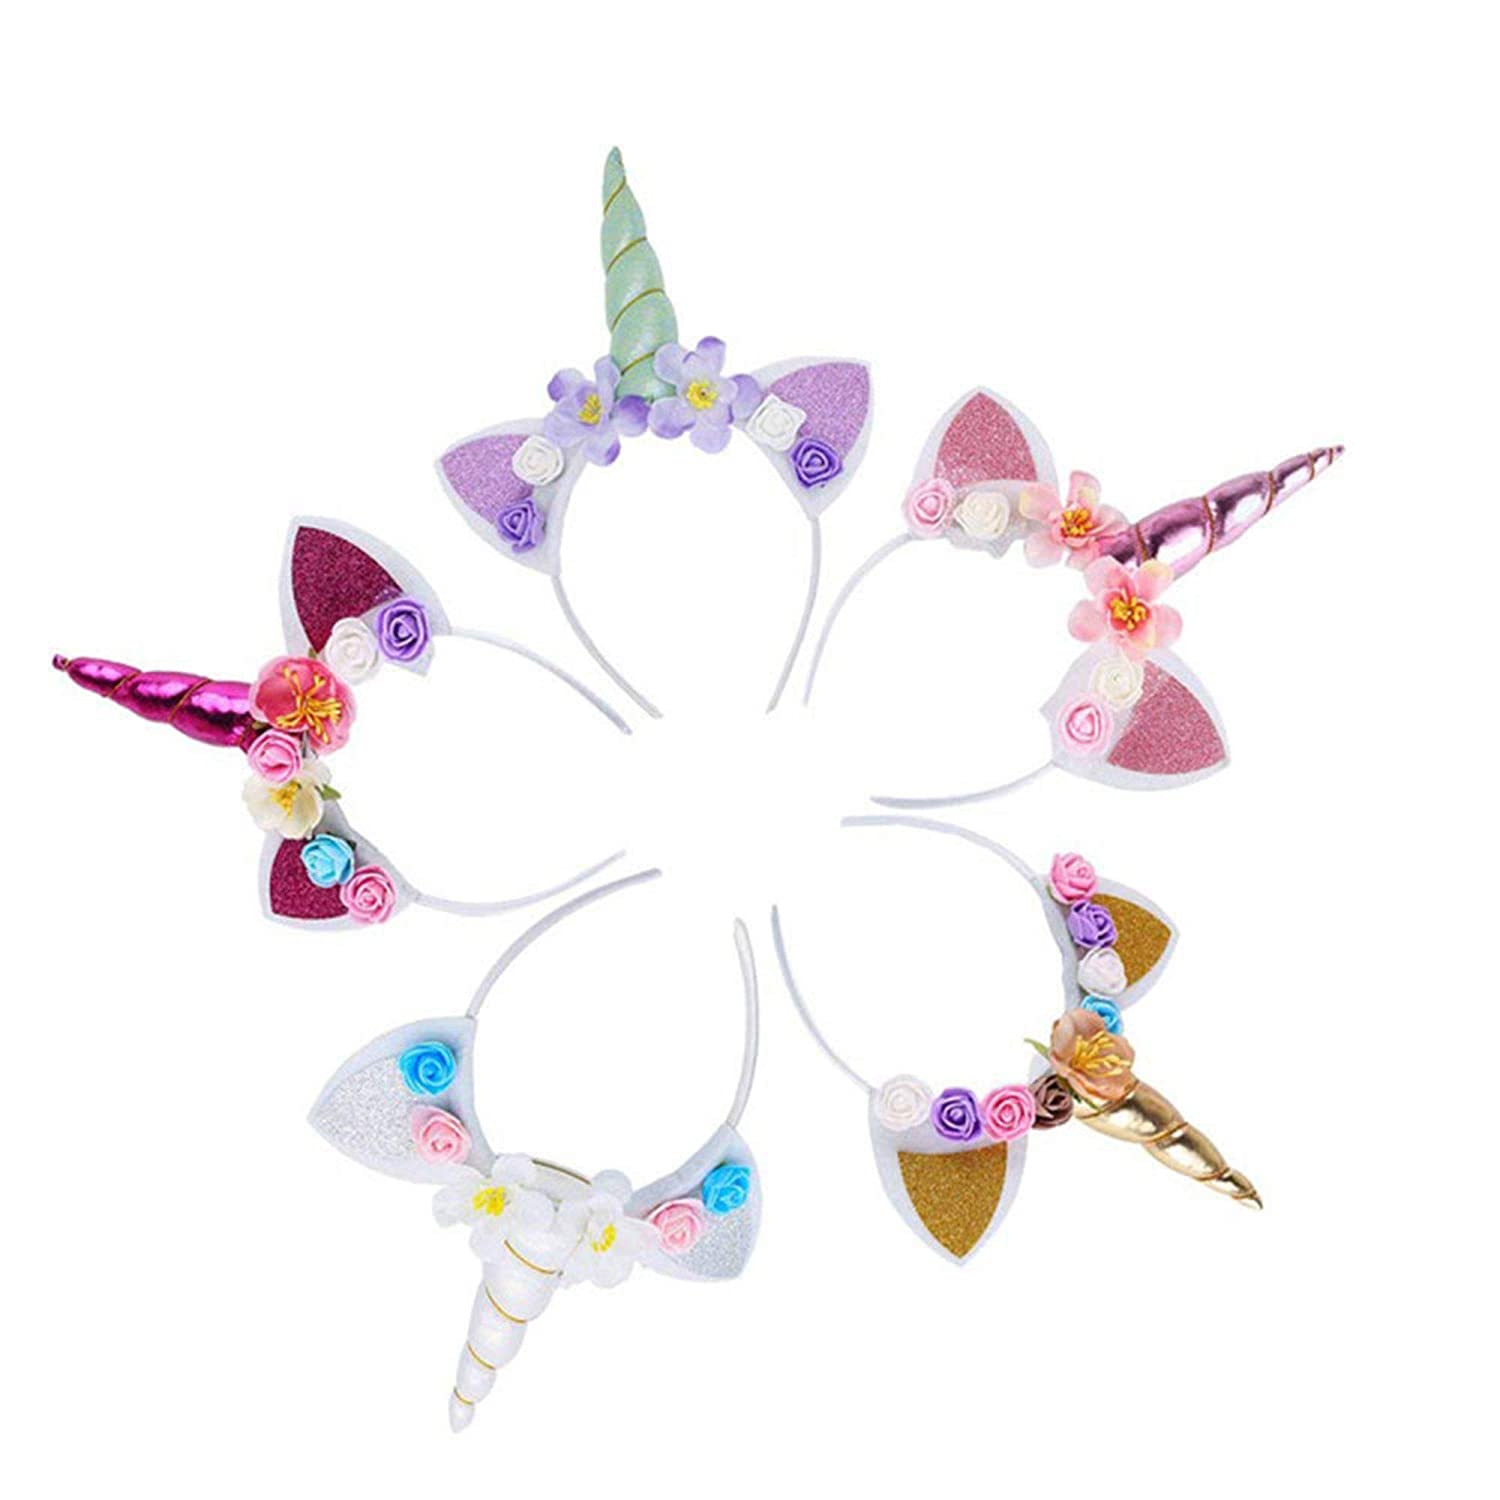 5PCS Glitter Unicorn Horn Headband, Flower Ears Unicorn Headbands for for Girls, Happy Birthday Unicorn Party Supplies, Favors and Decorations, Cosplay Costume HMT